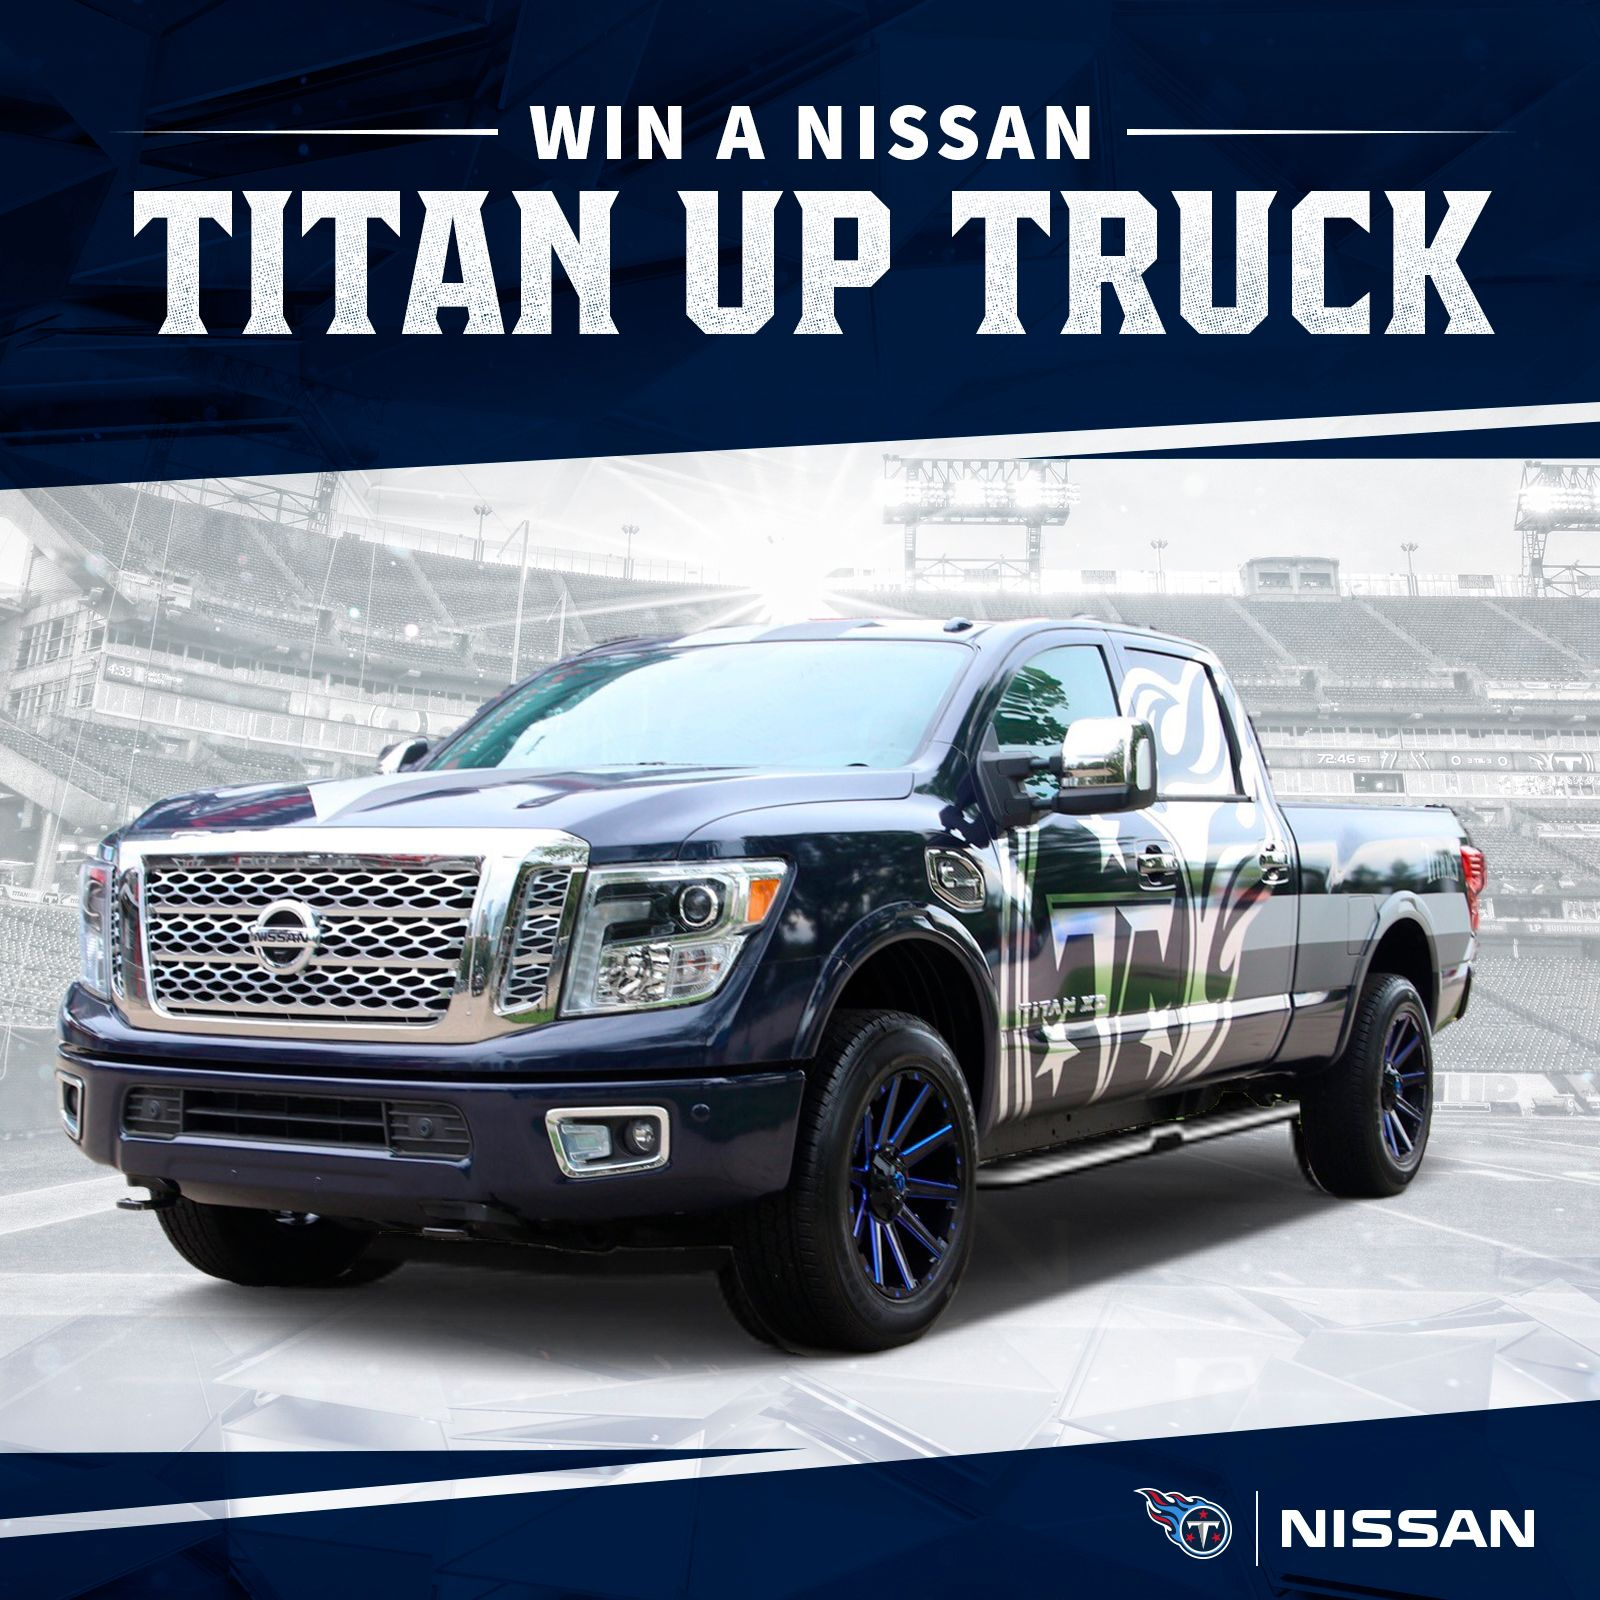 18nissan-truck-sweepstakes